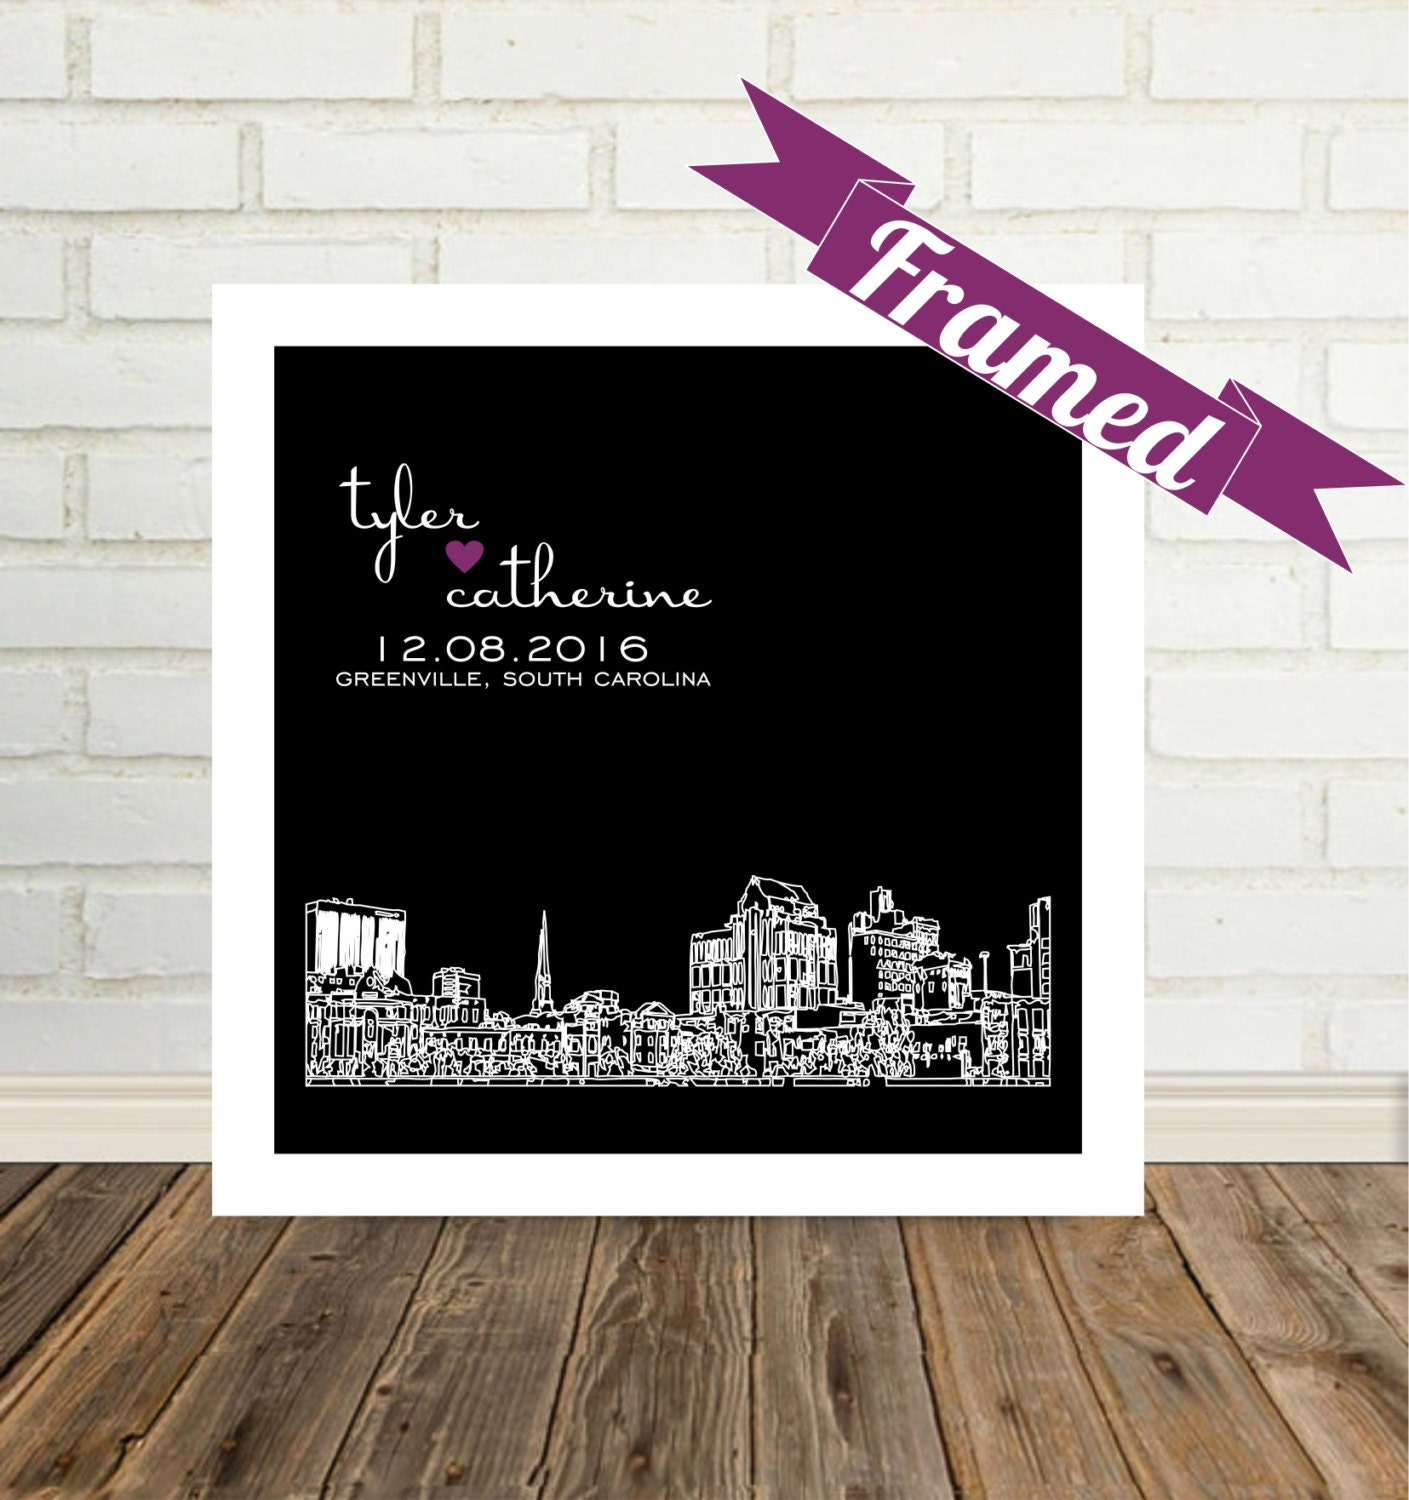 Personalised Wedding Gift Art : Personalized Wedding Gift Art Greenville Skyline Print FRAMED